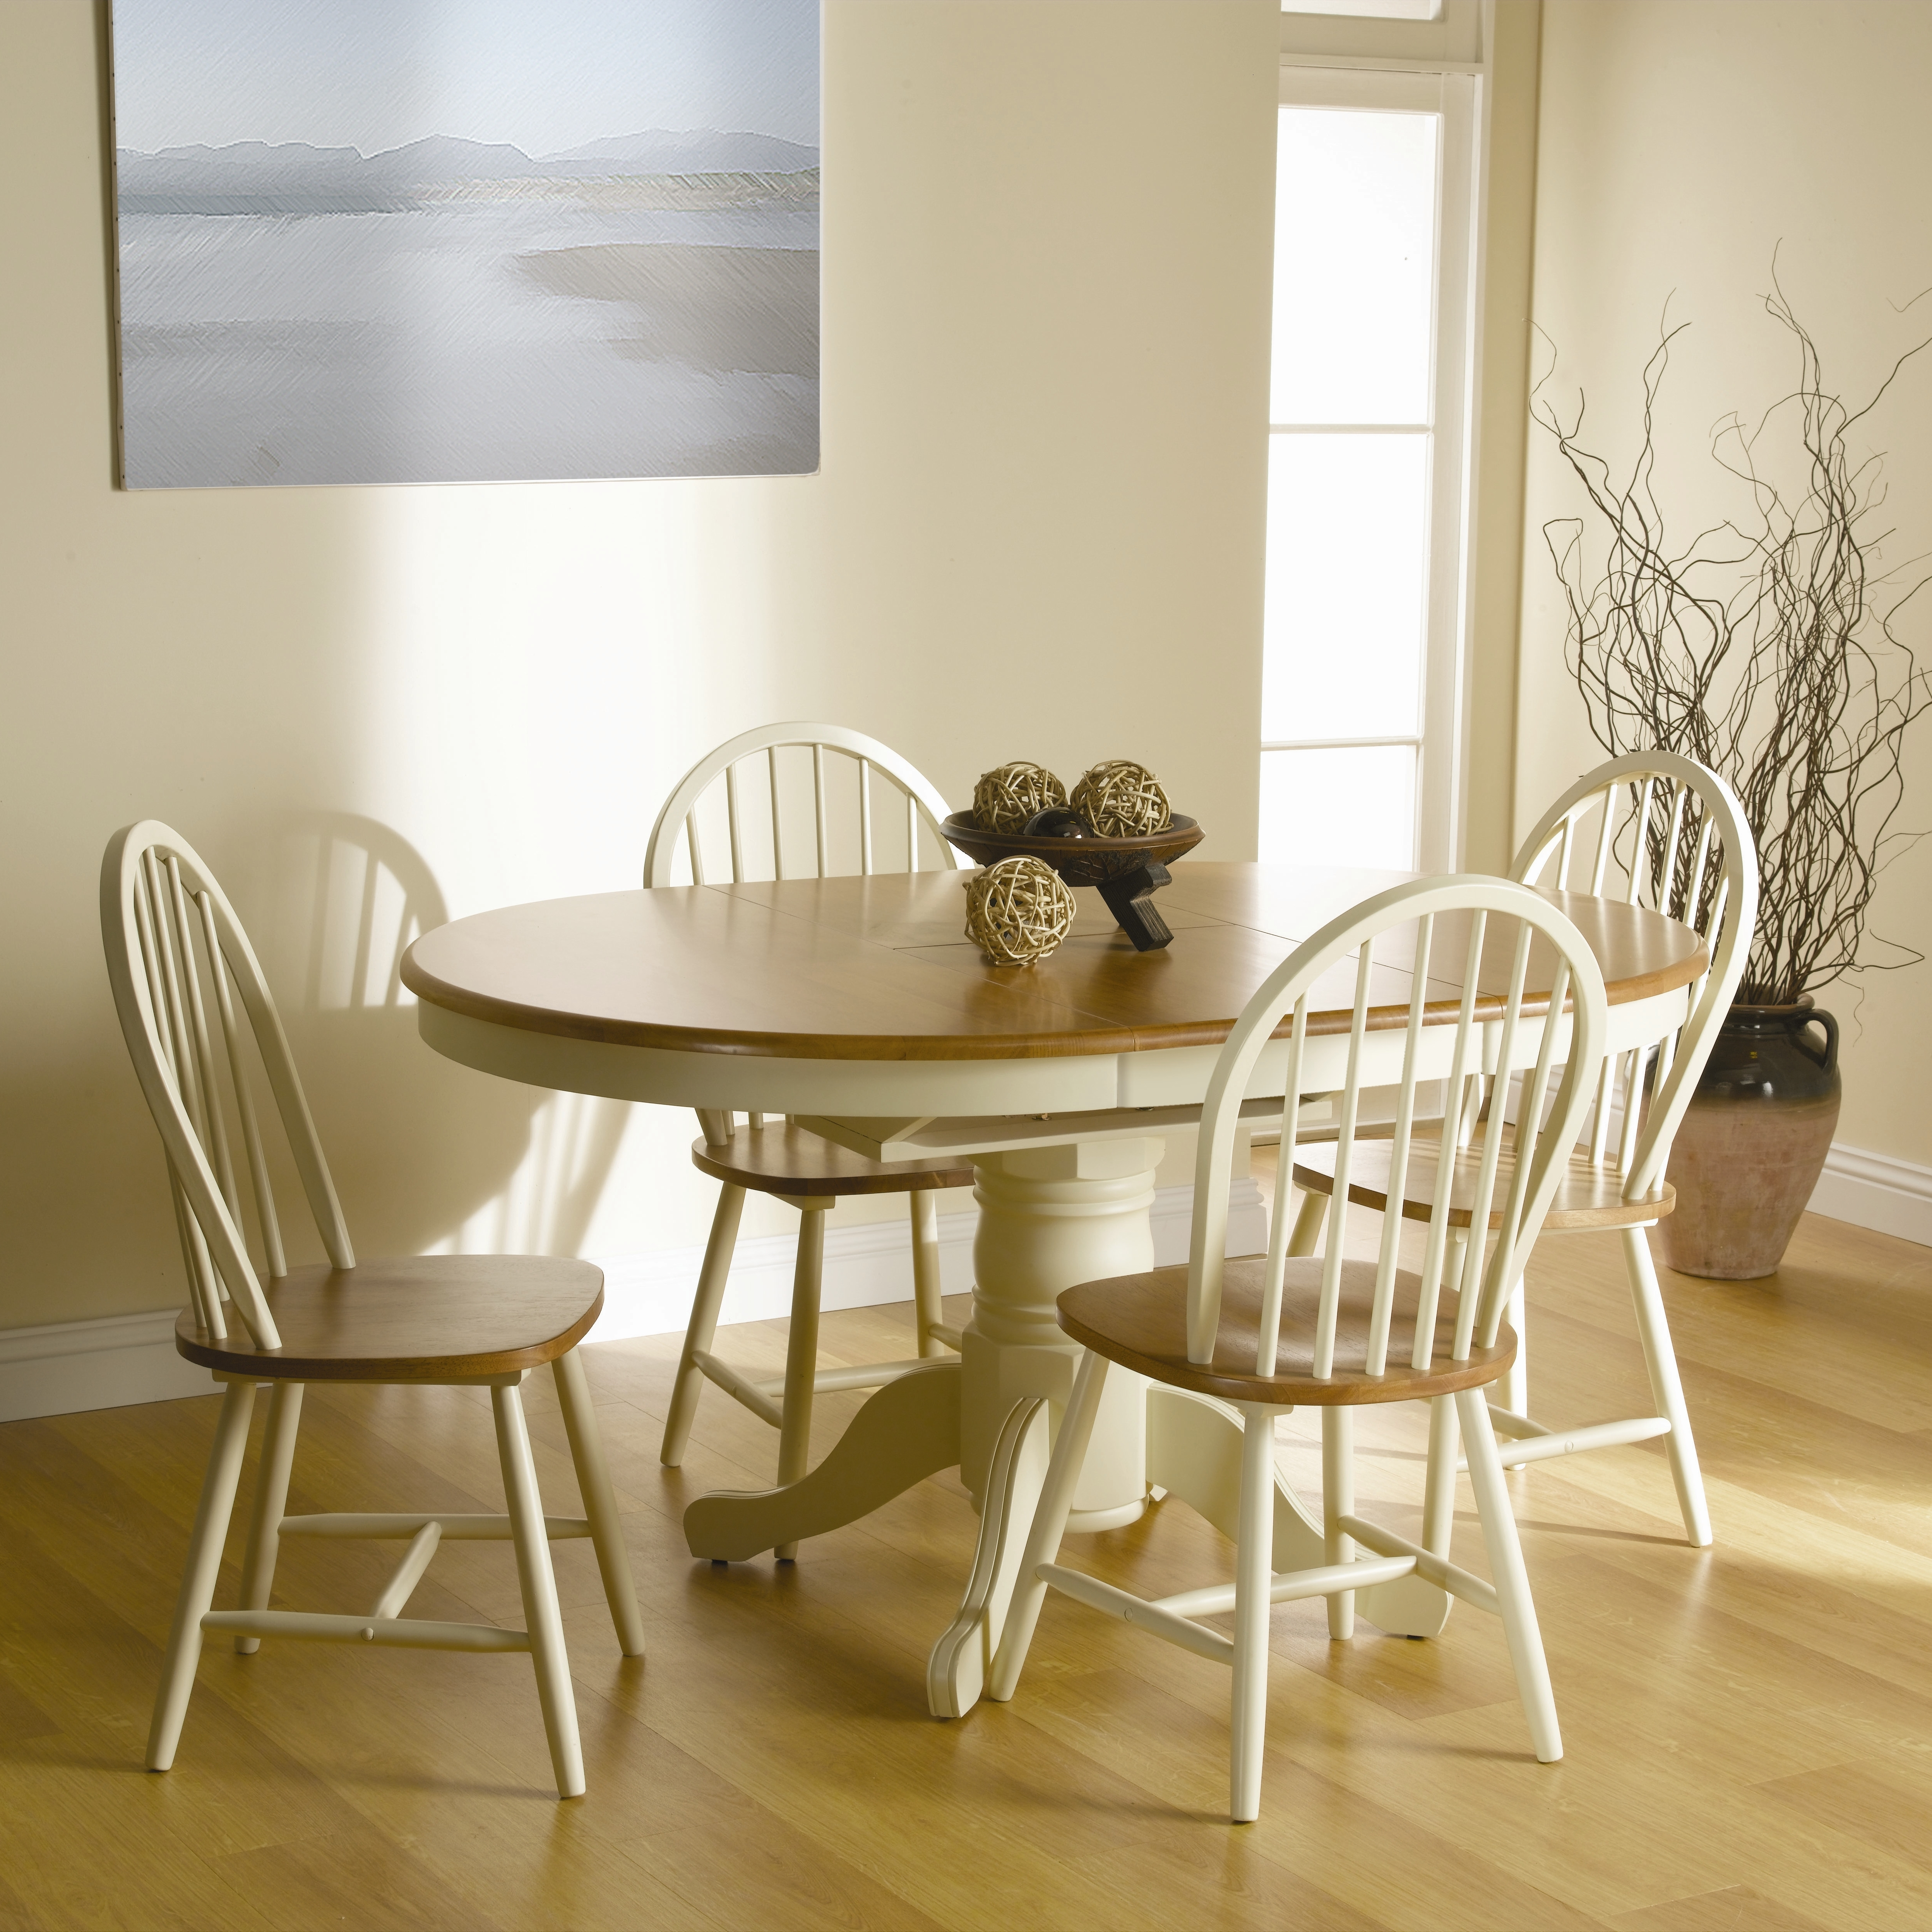 Round Extending Dining Tables Sets Pertaining To Best And Newest Extending Round Dining Table Oblong Solid Wood Oak Cream Furniture (View 18 of 25)